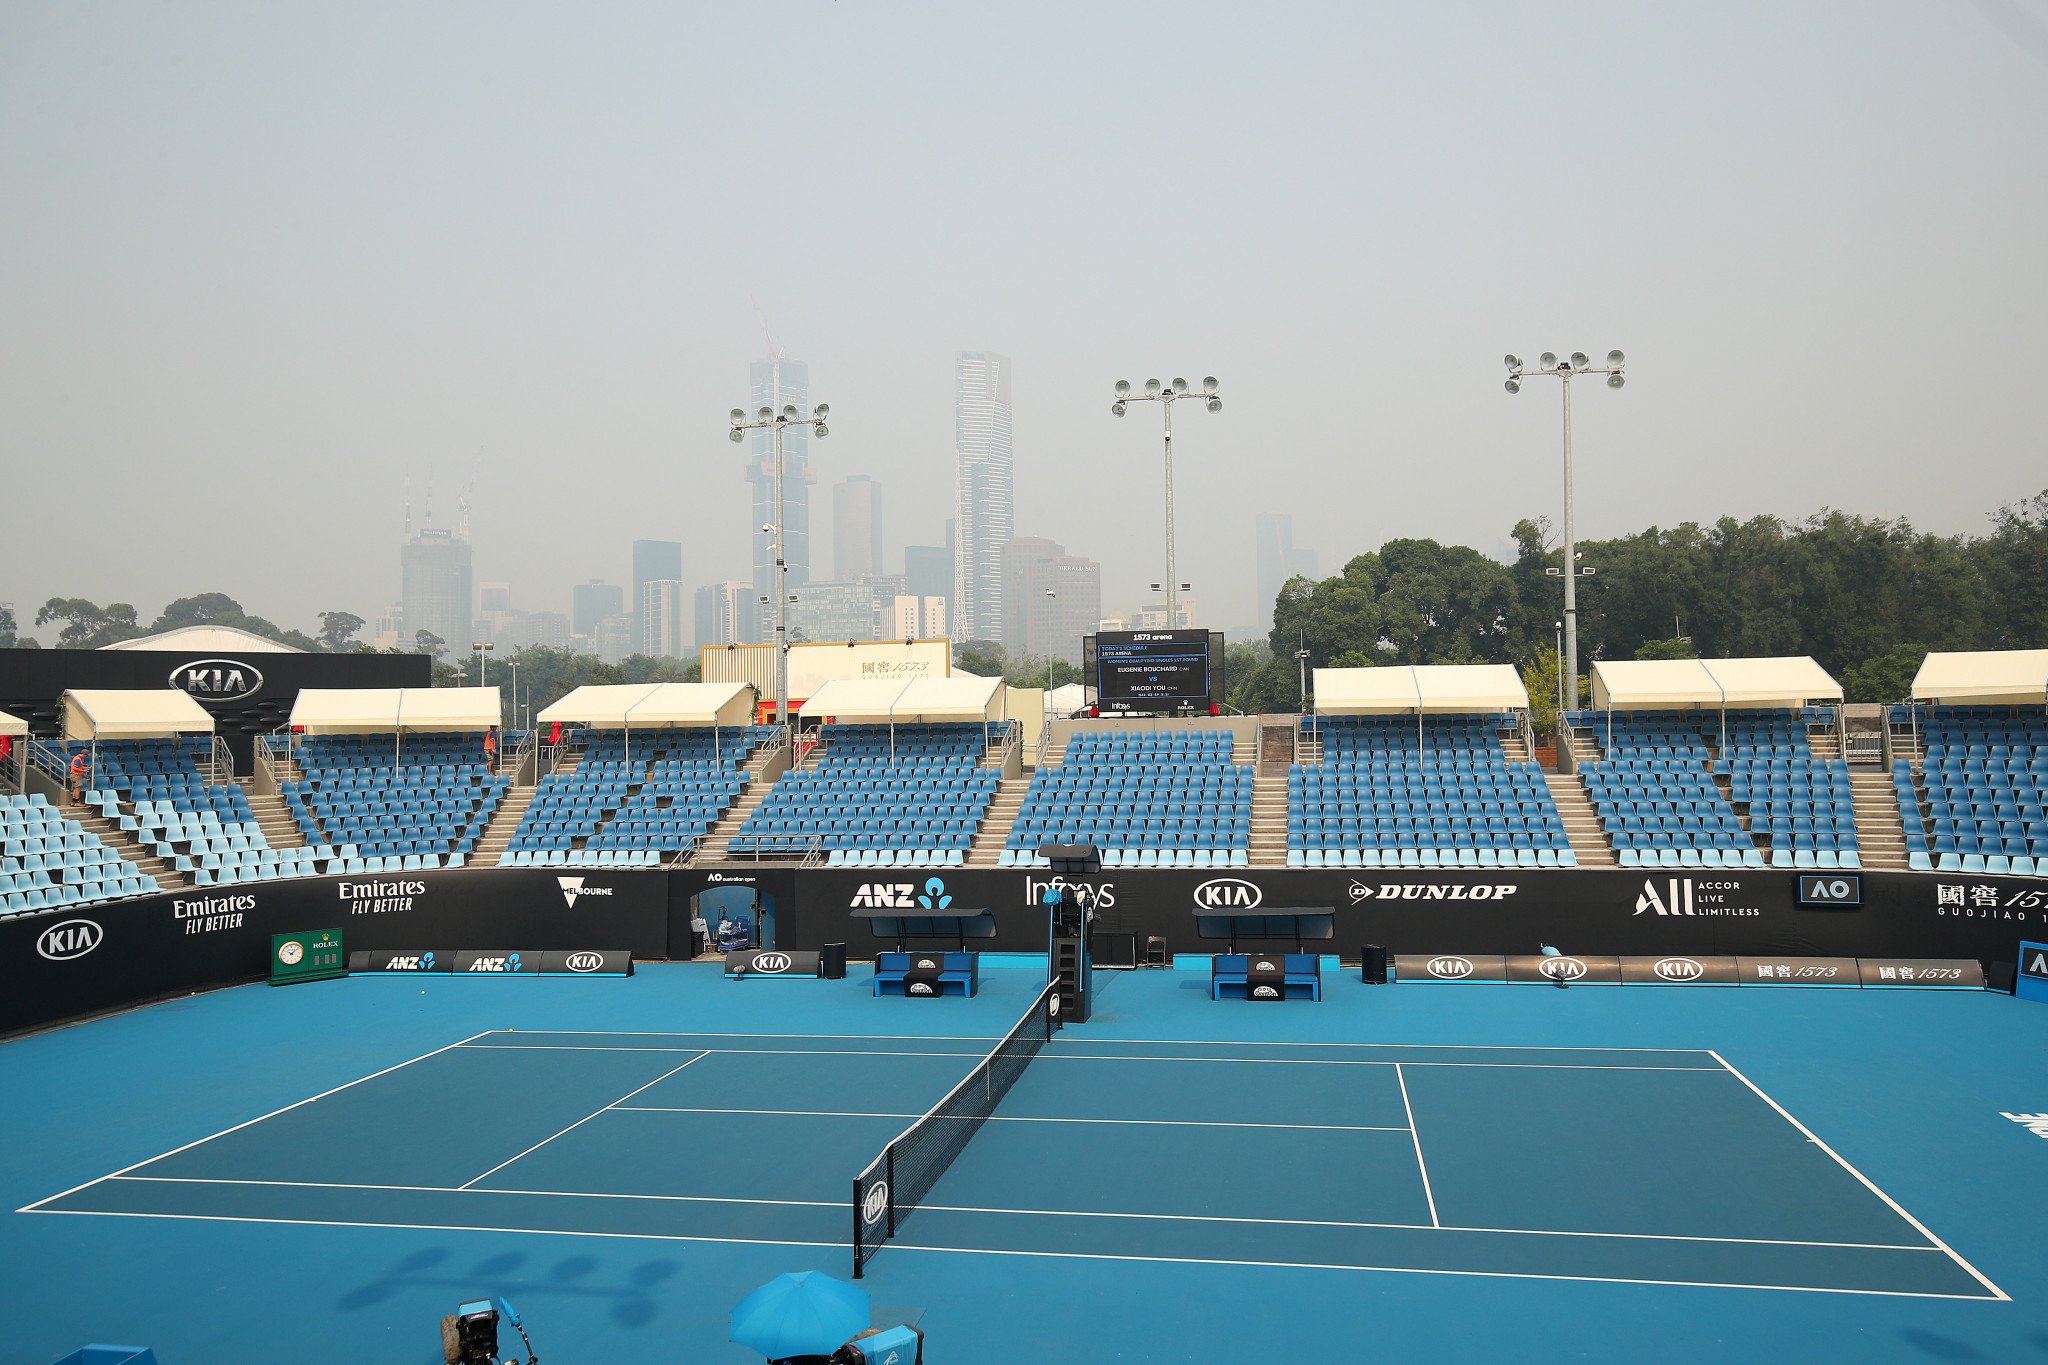 Smoke from the bushfires threatened to delay the start of the Australian Open, with some players struggling to breath in the preliminary rounds ©Getty Images